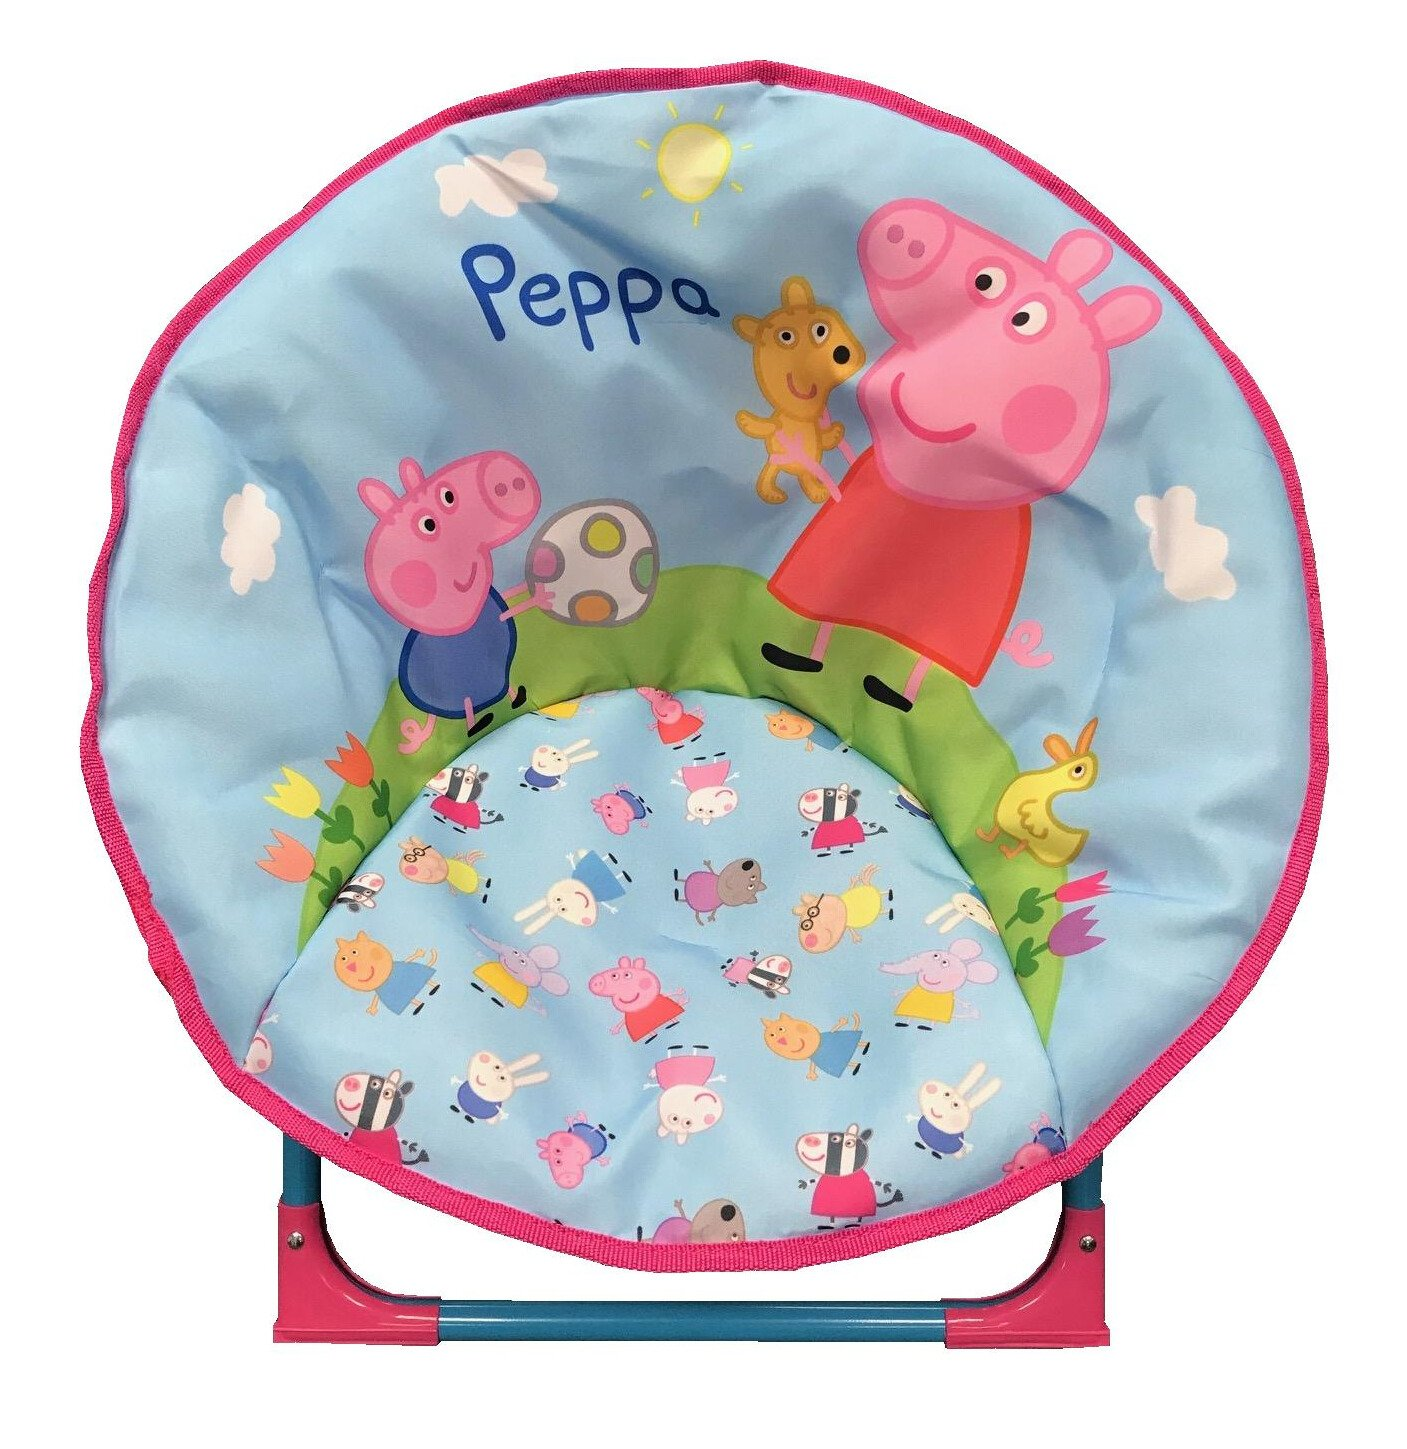 just4baby Kids Children Foldable Bedroom Play Room Moon Chair Moonchair Peppa Pig Design